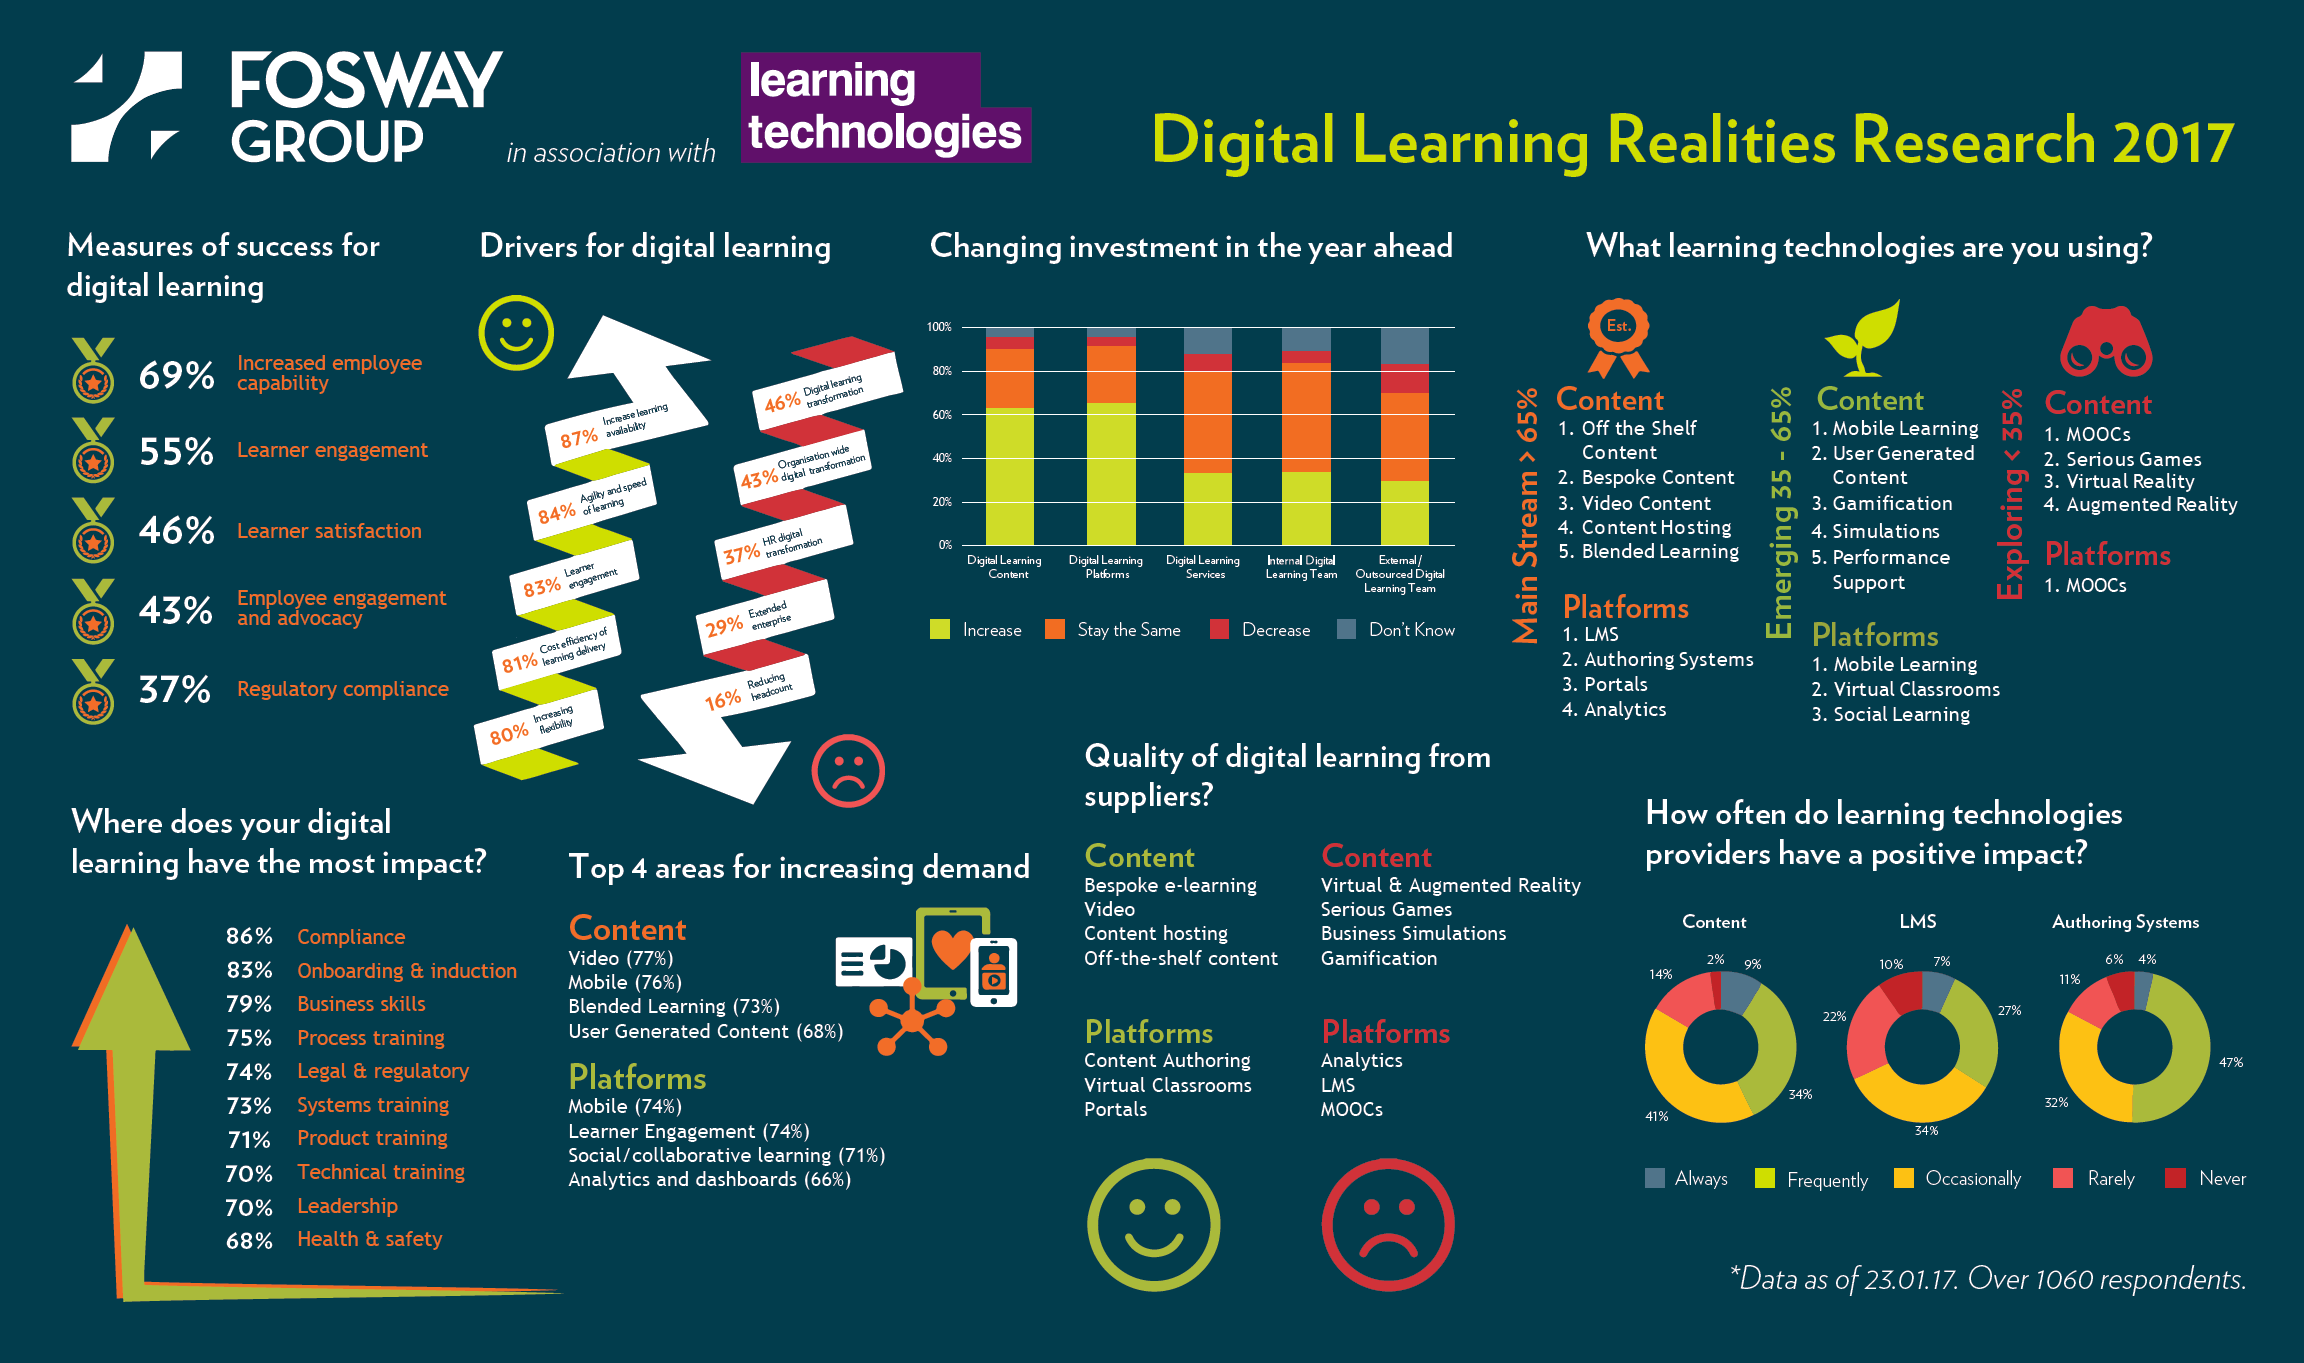 2017 Digital Learning Realities Research